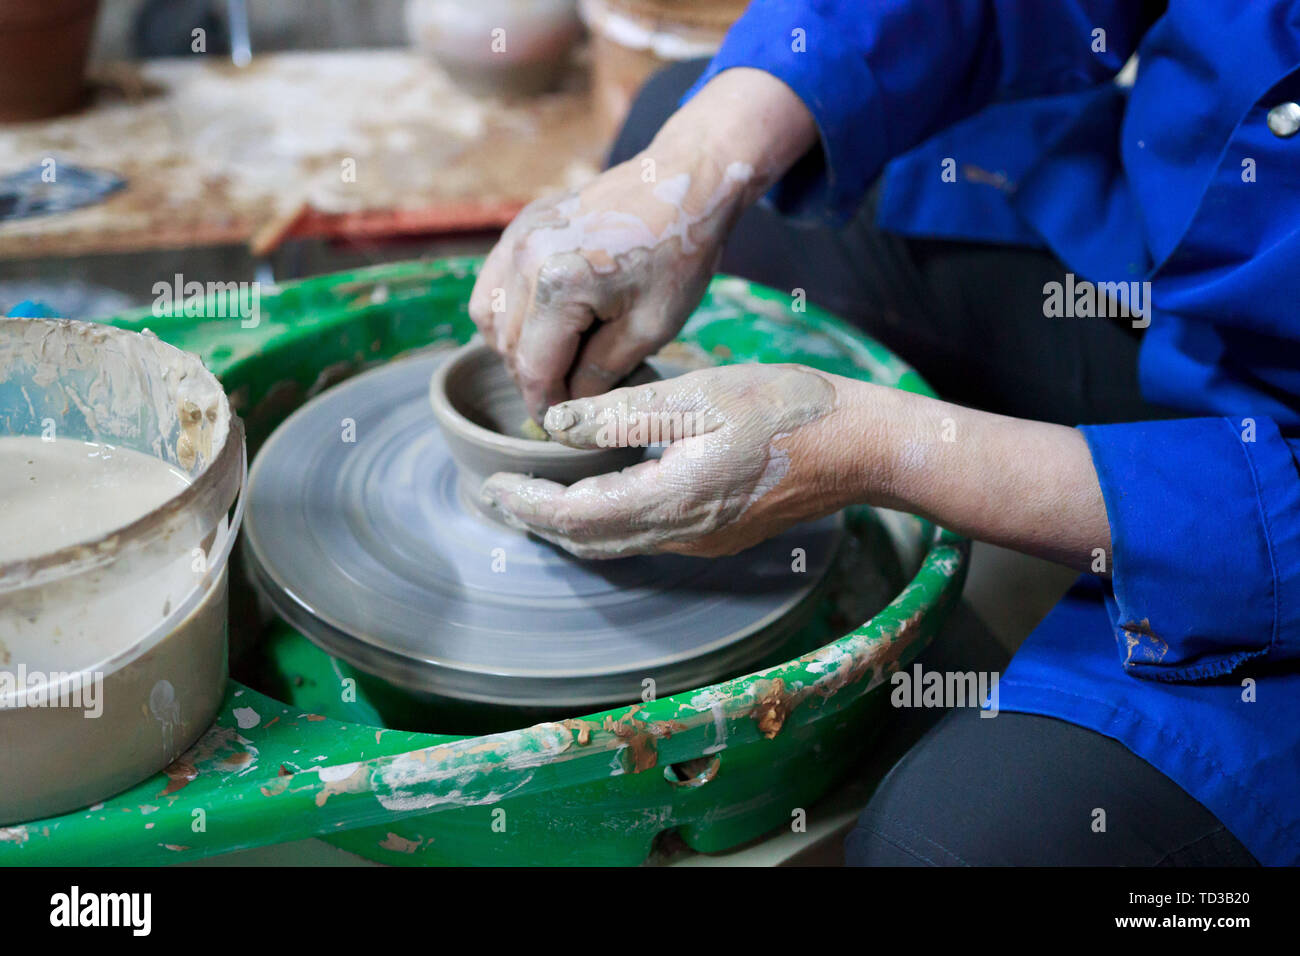 A novice student in the first lesson in pottery tries to make a product from clay on a potter's wheel. reportage Stock Photo